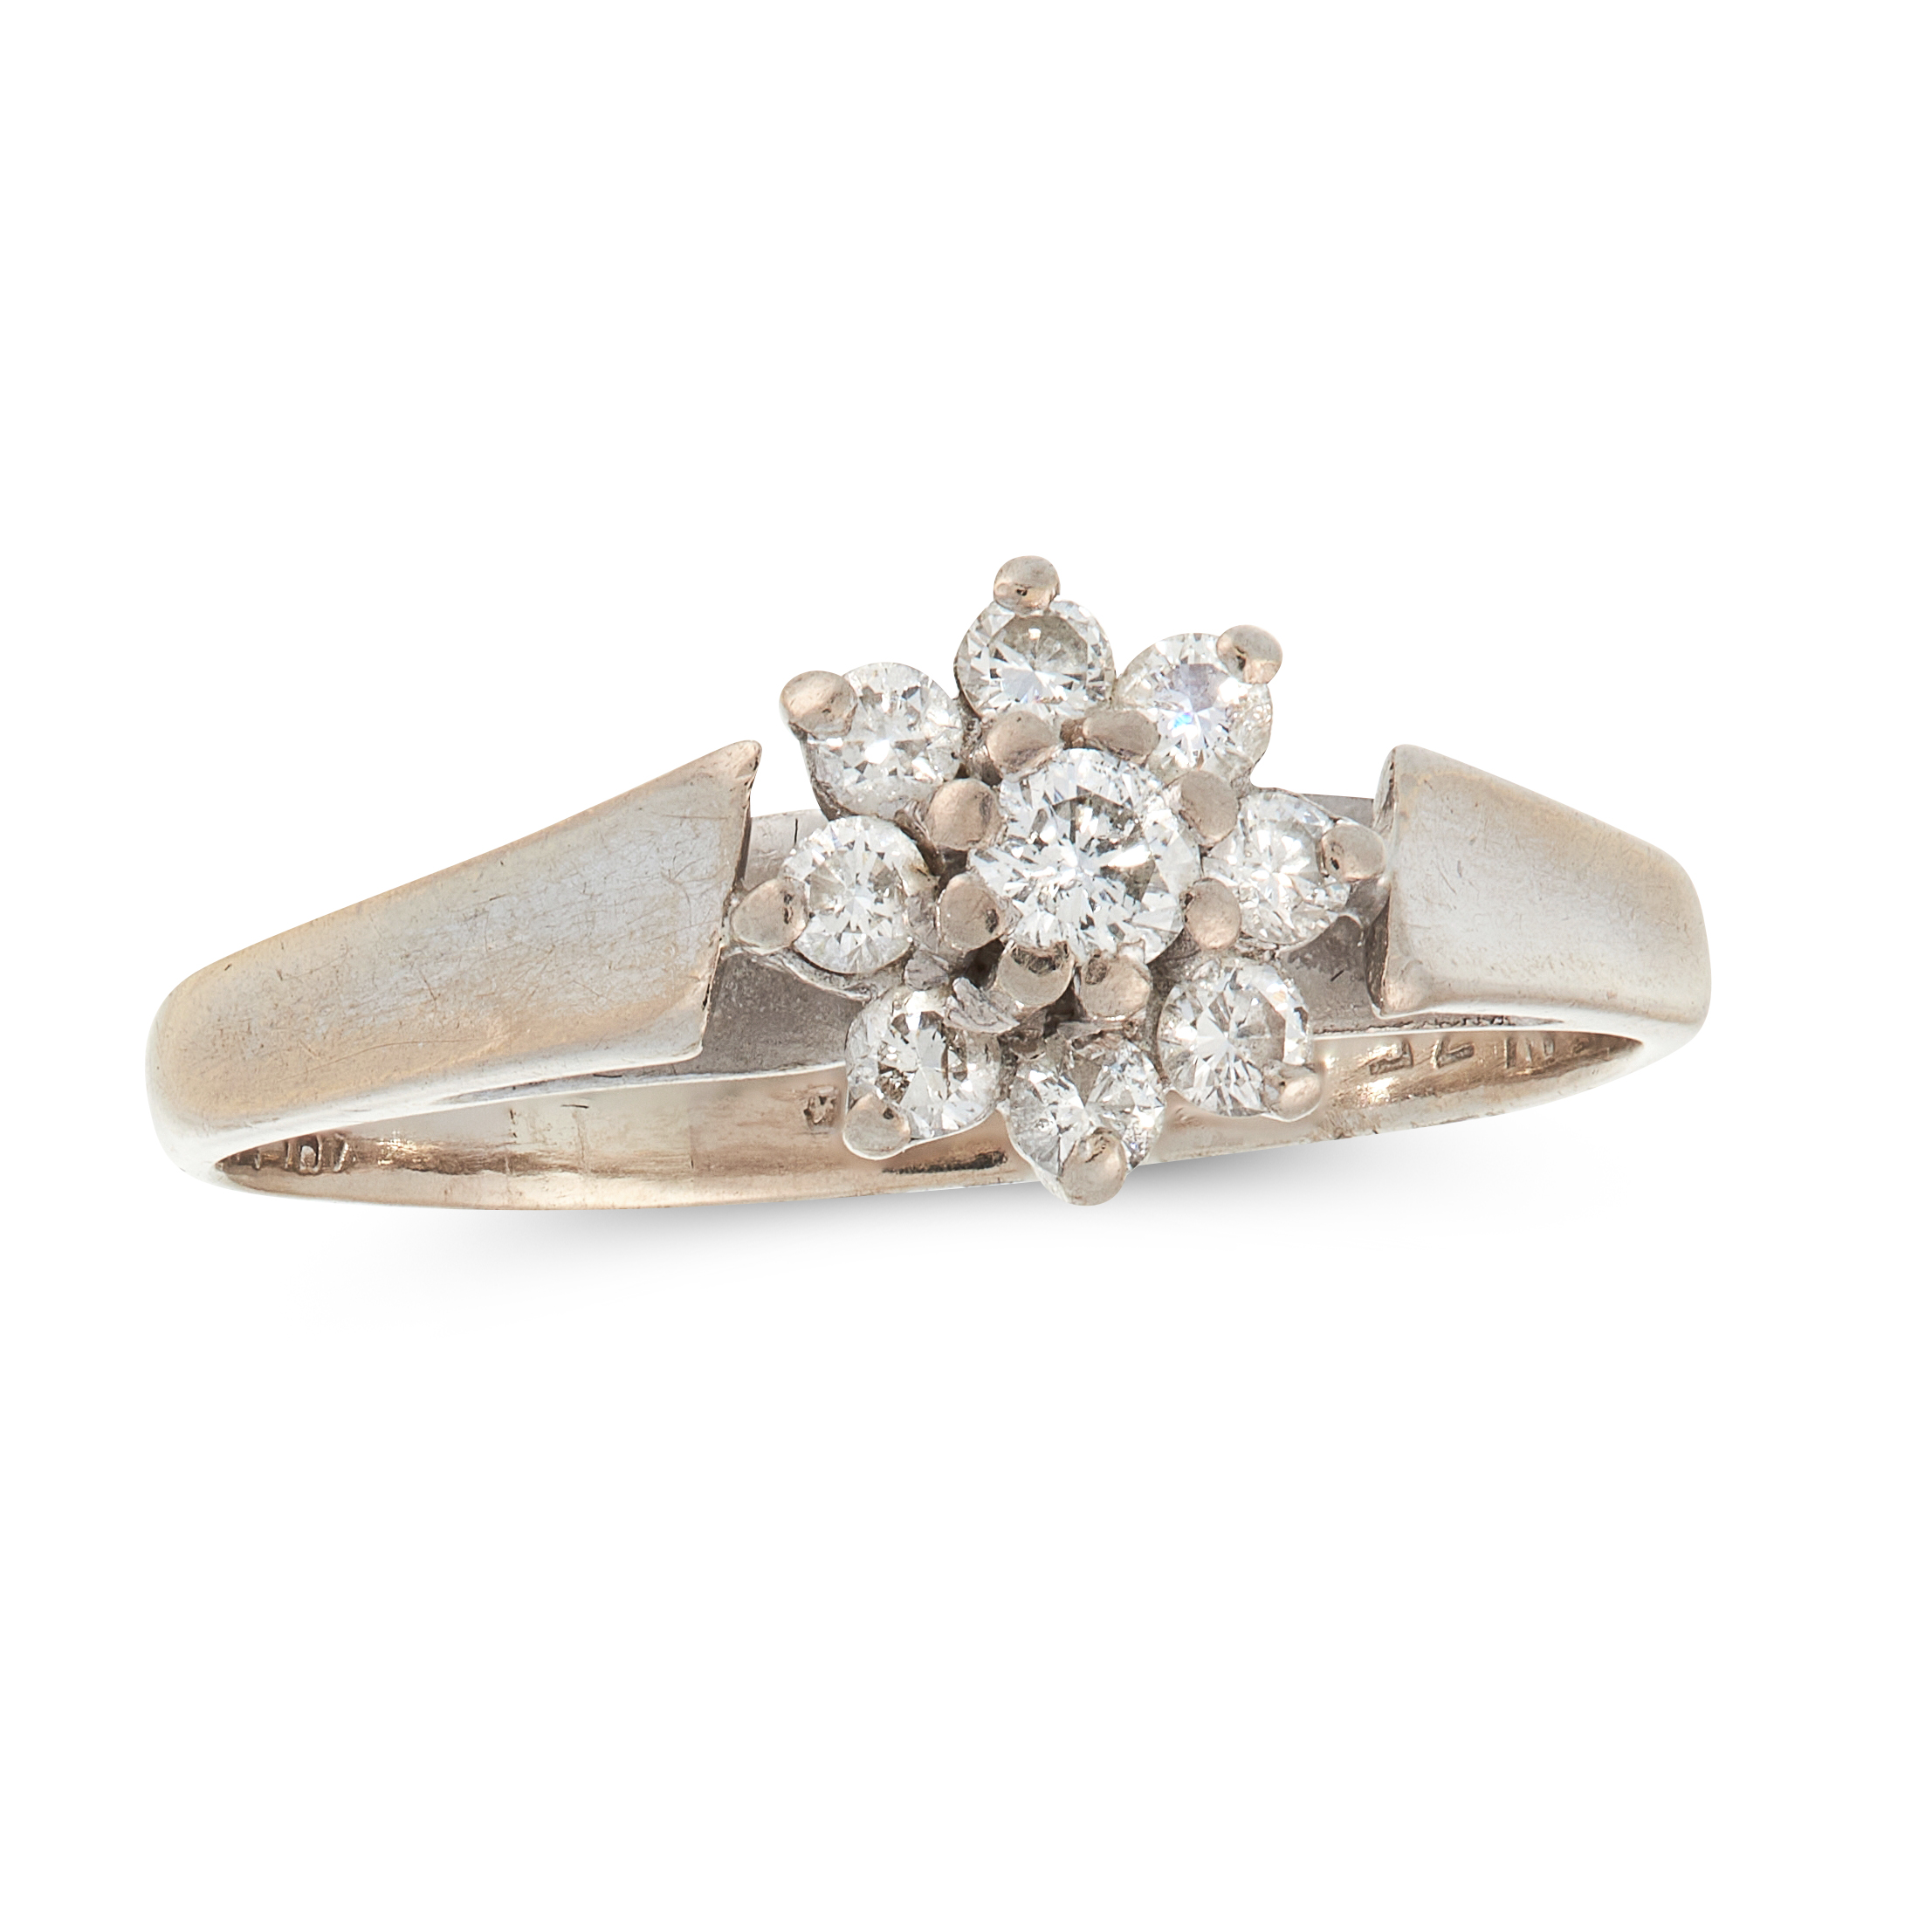 A DIAMOND CLUSTER RING in 18ct white gold, set with a cluster of round cut diamonds totalling 0.35